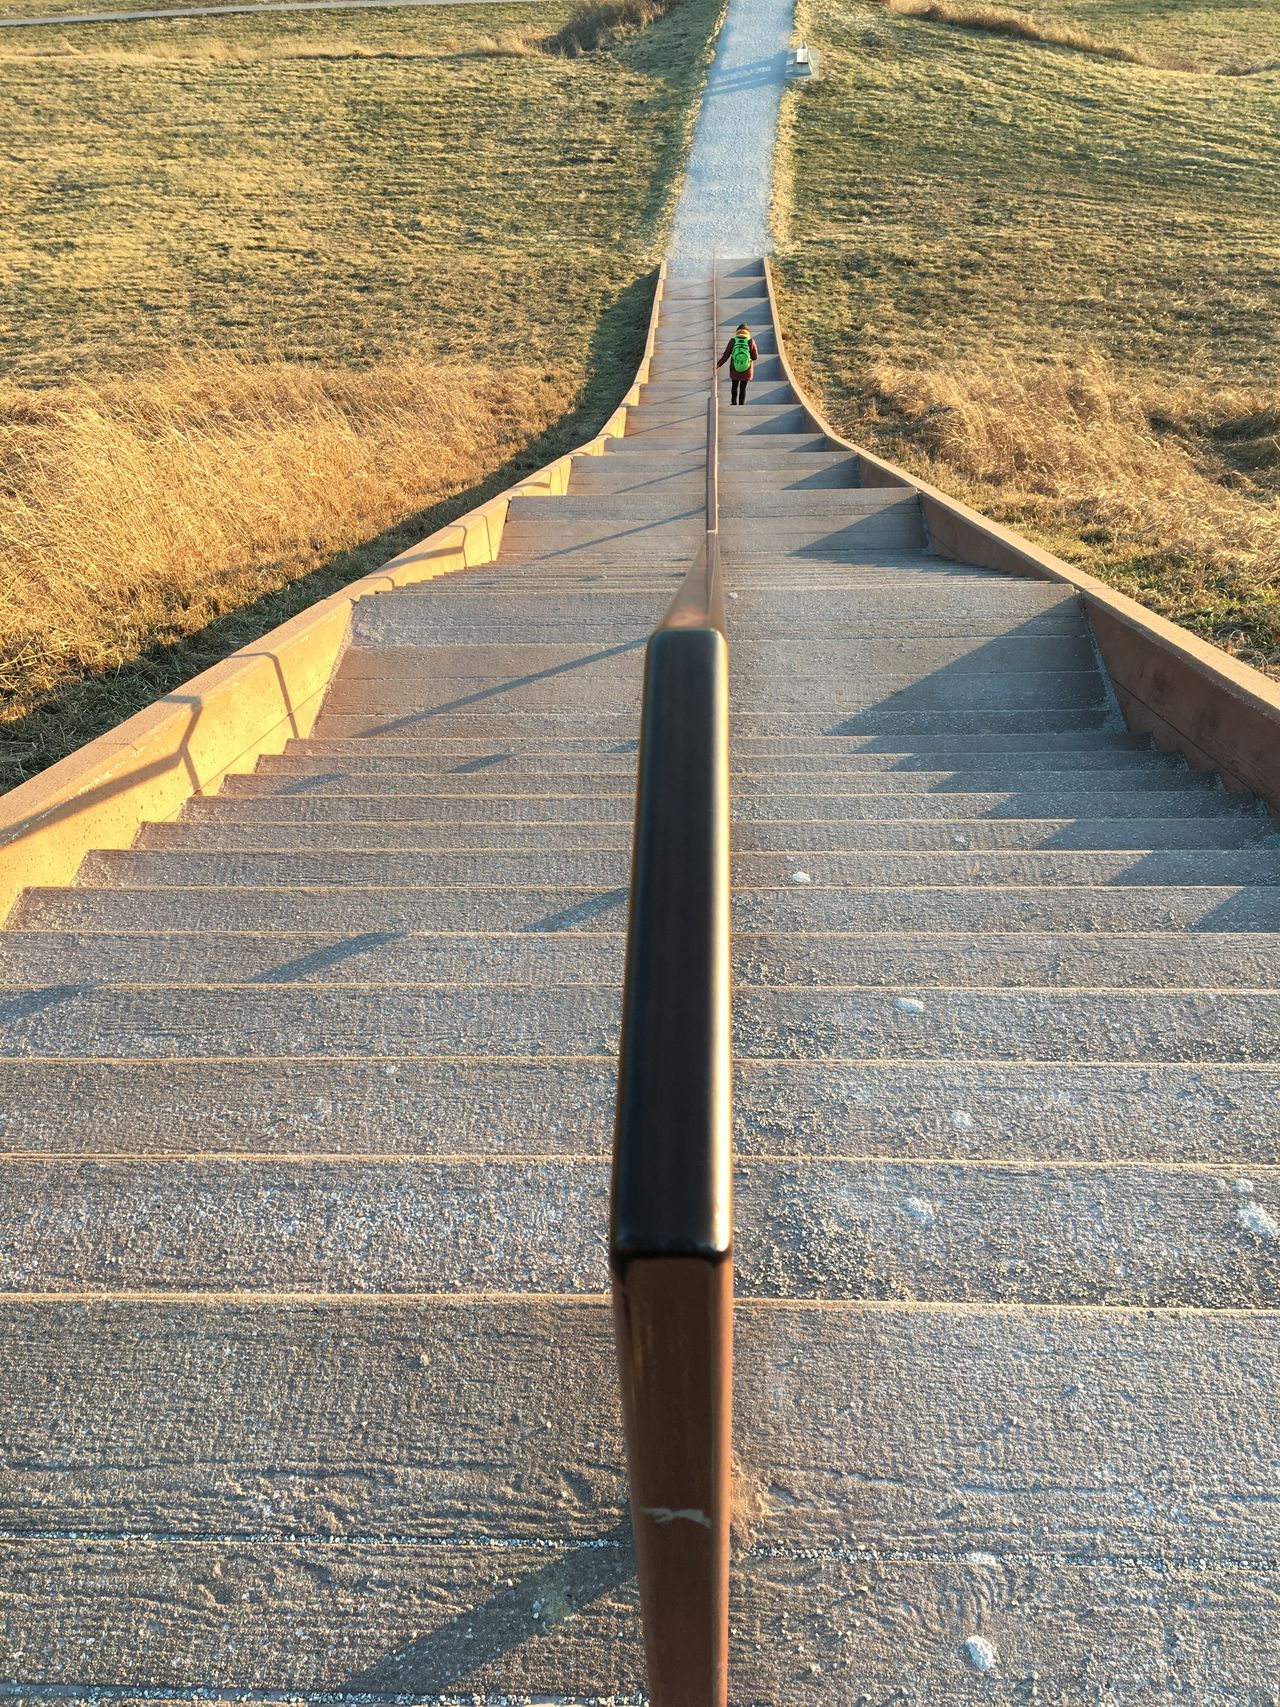 Stairs Staircase Transportation Road Landscape Day Nature Outdoors Travel Symmetry Sunlight Cahokia Mounds Sacred Places